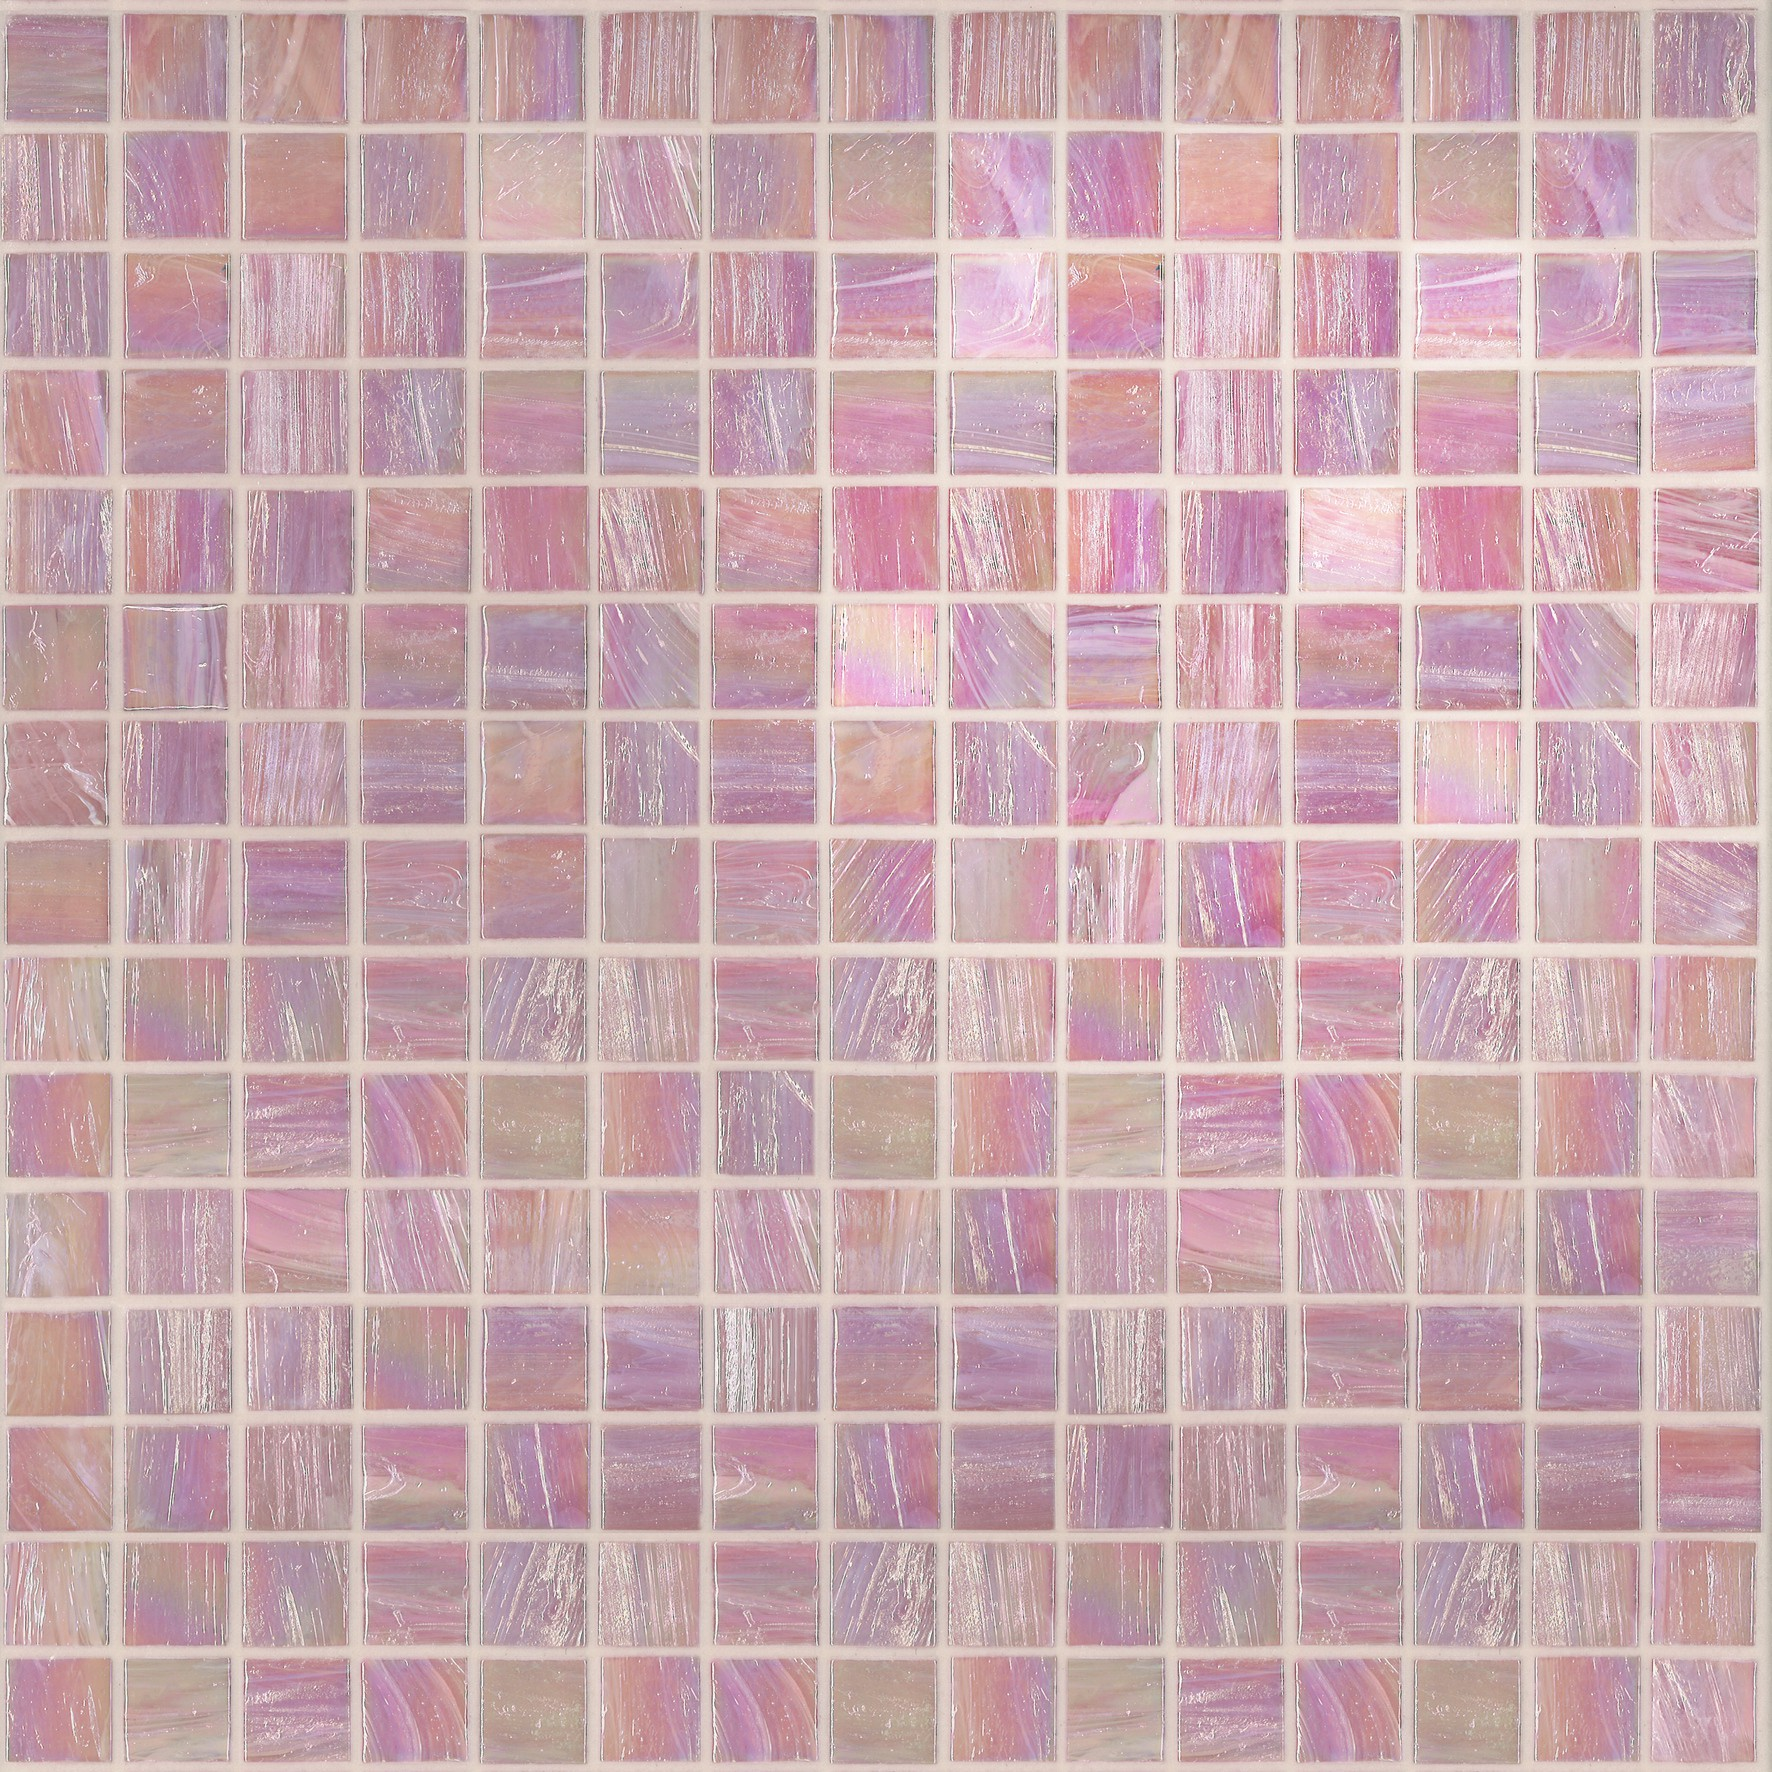 "Bisazza Gloss GL 10 Glass Mosaic Tile 20mm - 3/4"", 1 sheet"